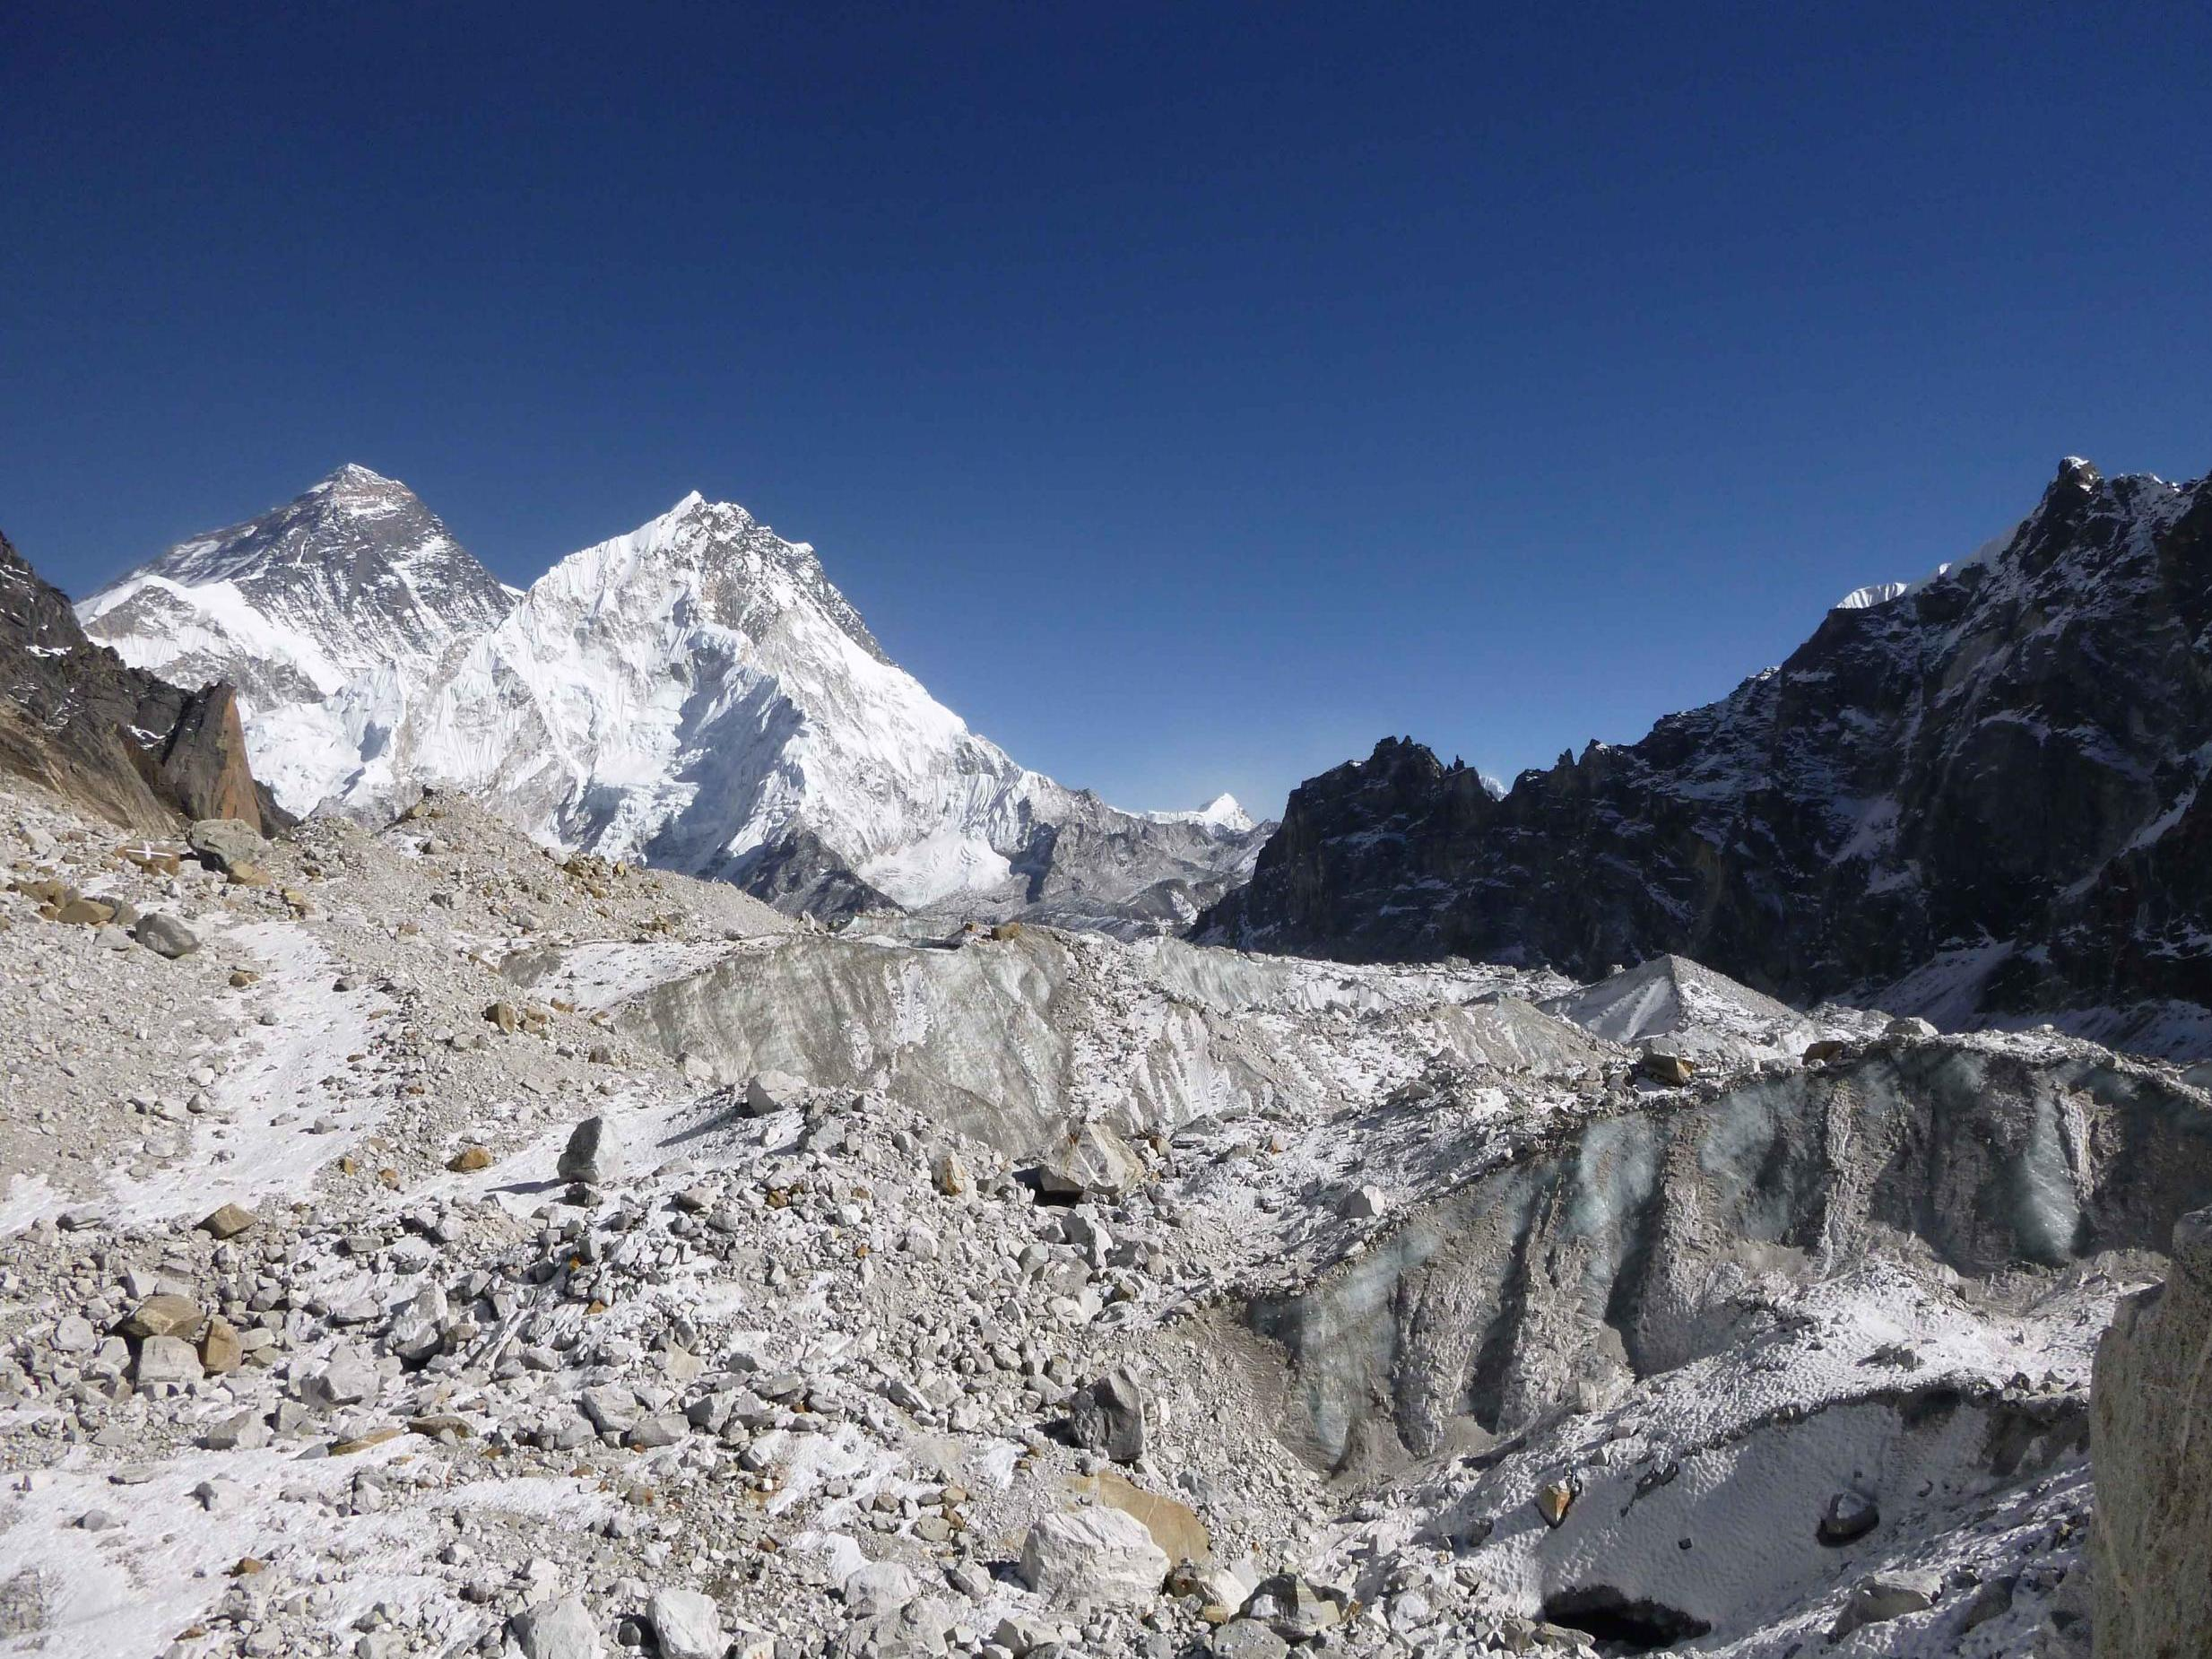 Melting of Himalayan glaciers has doubled in past 20 years, study warns